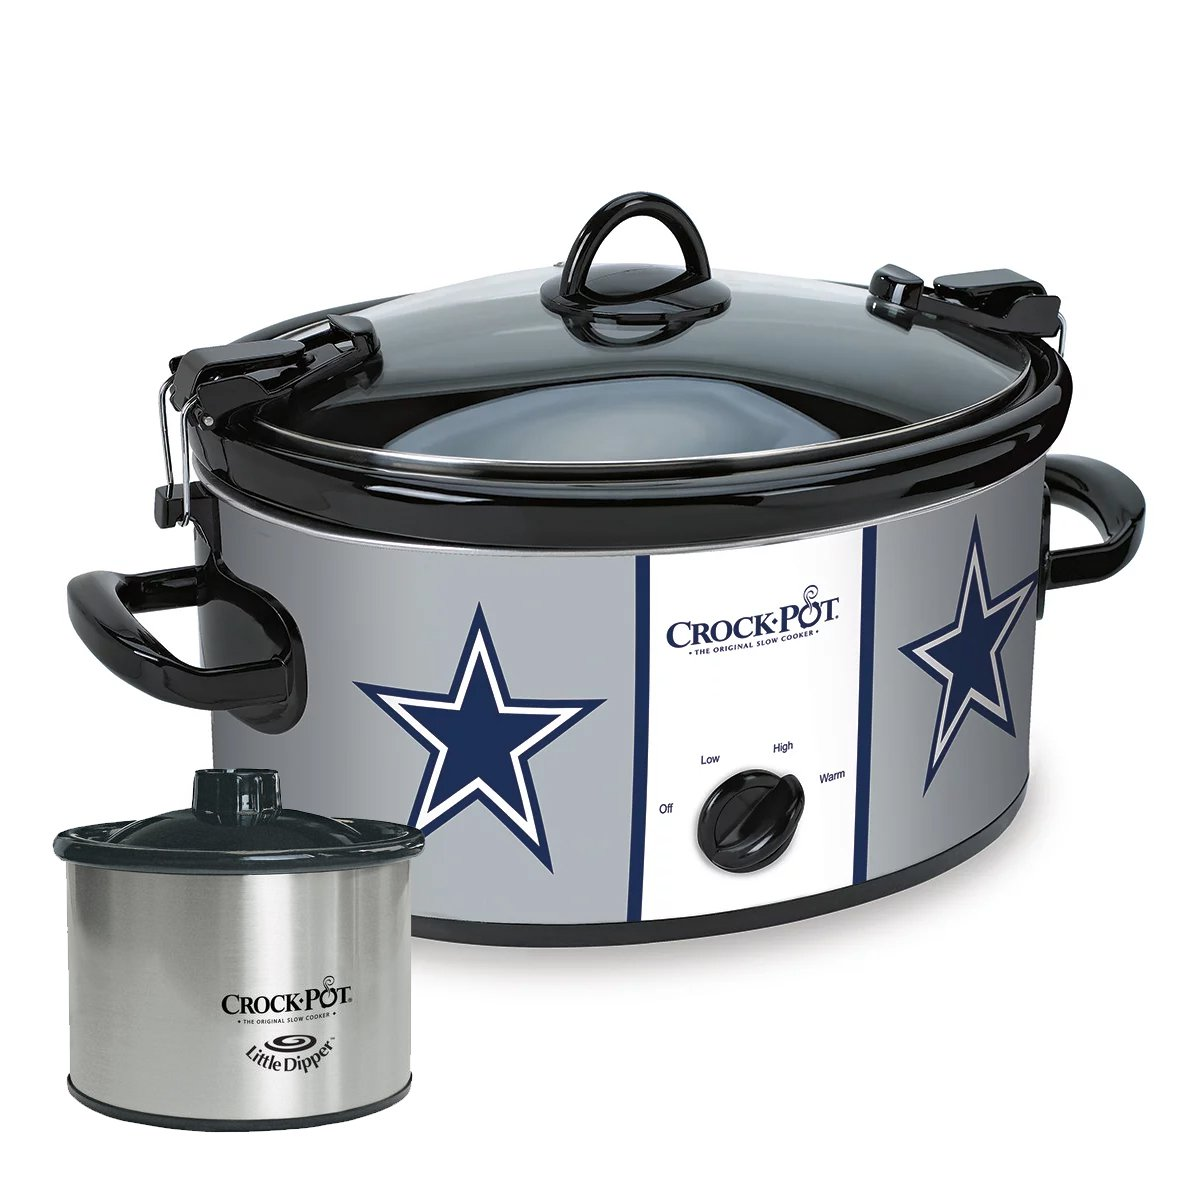 Crock Pot 6 Quart Cook & Carry Slow Cooker w/ 16oz Little Dipper, Dallas Cowboys